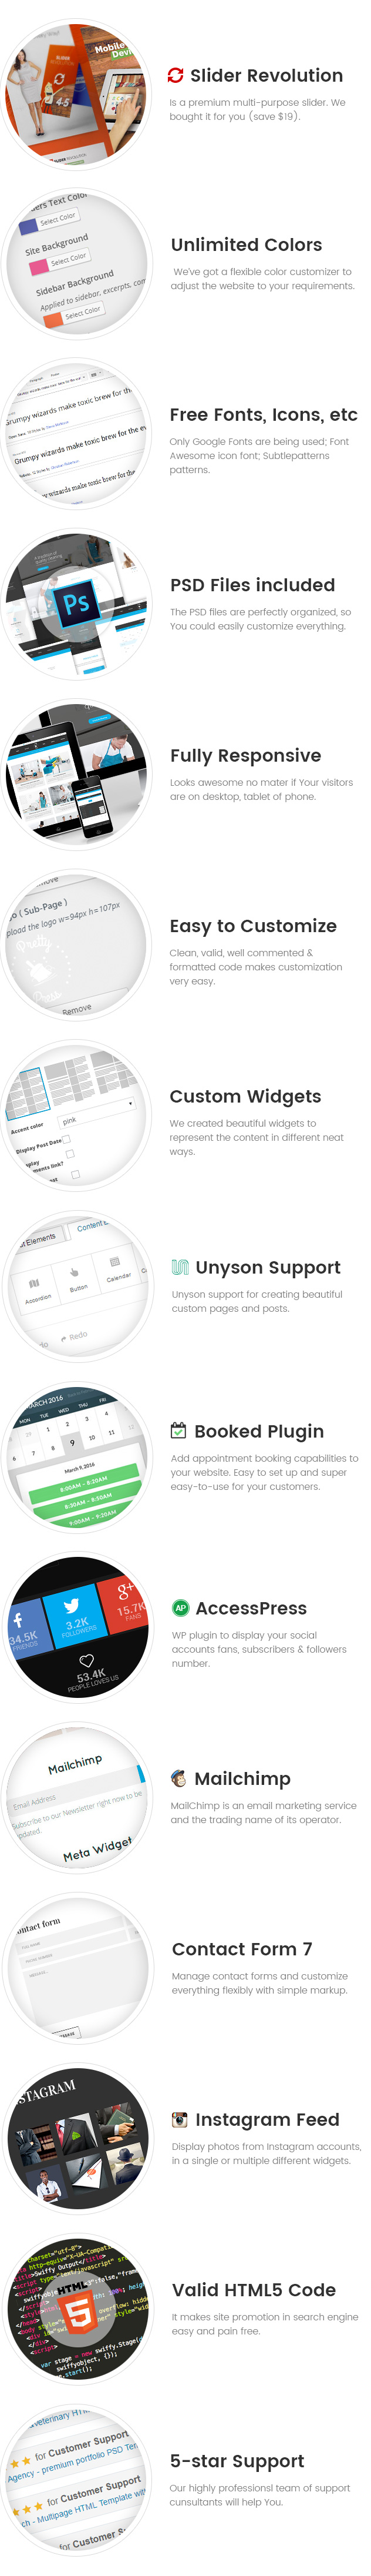 PrettyPress - Cleaning Service WordPress Theme